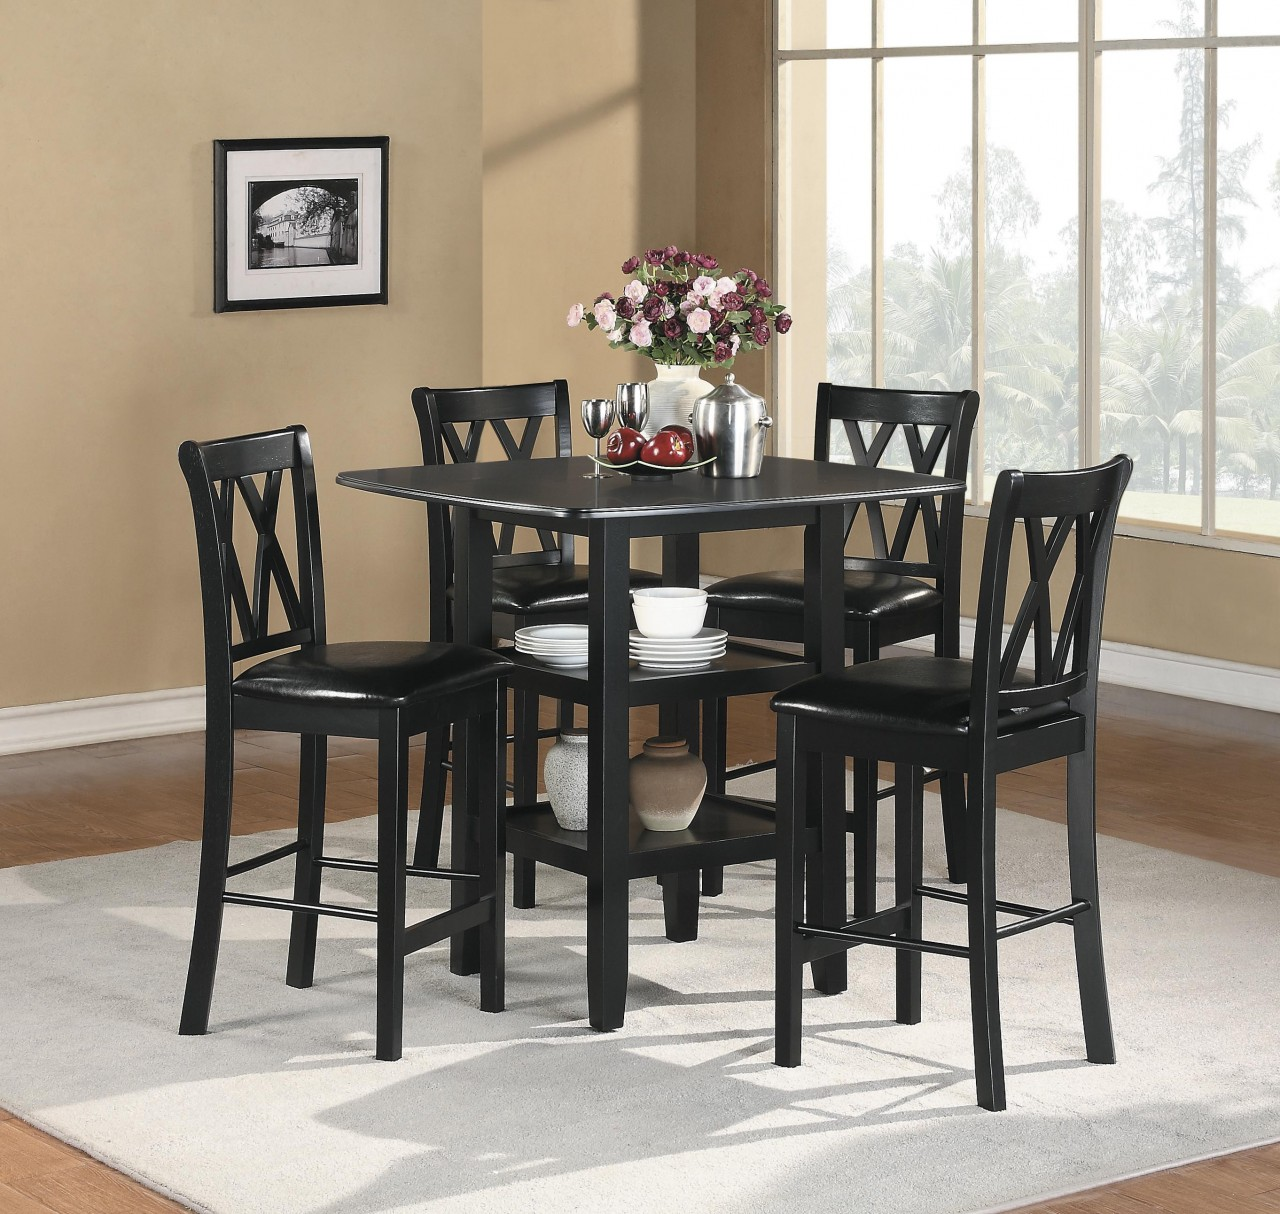 Countertop Table Sets Homelegance Norman 5 Piece Counter Height Table Set In